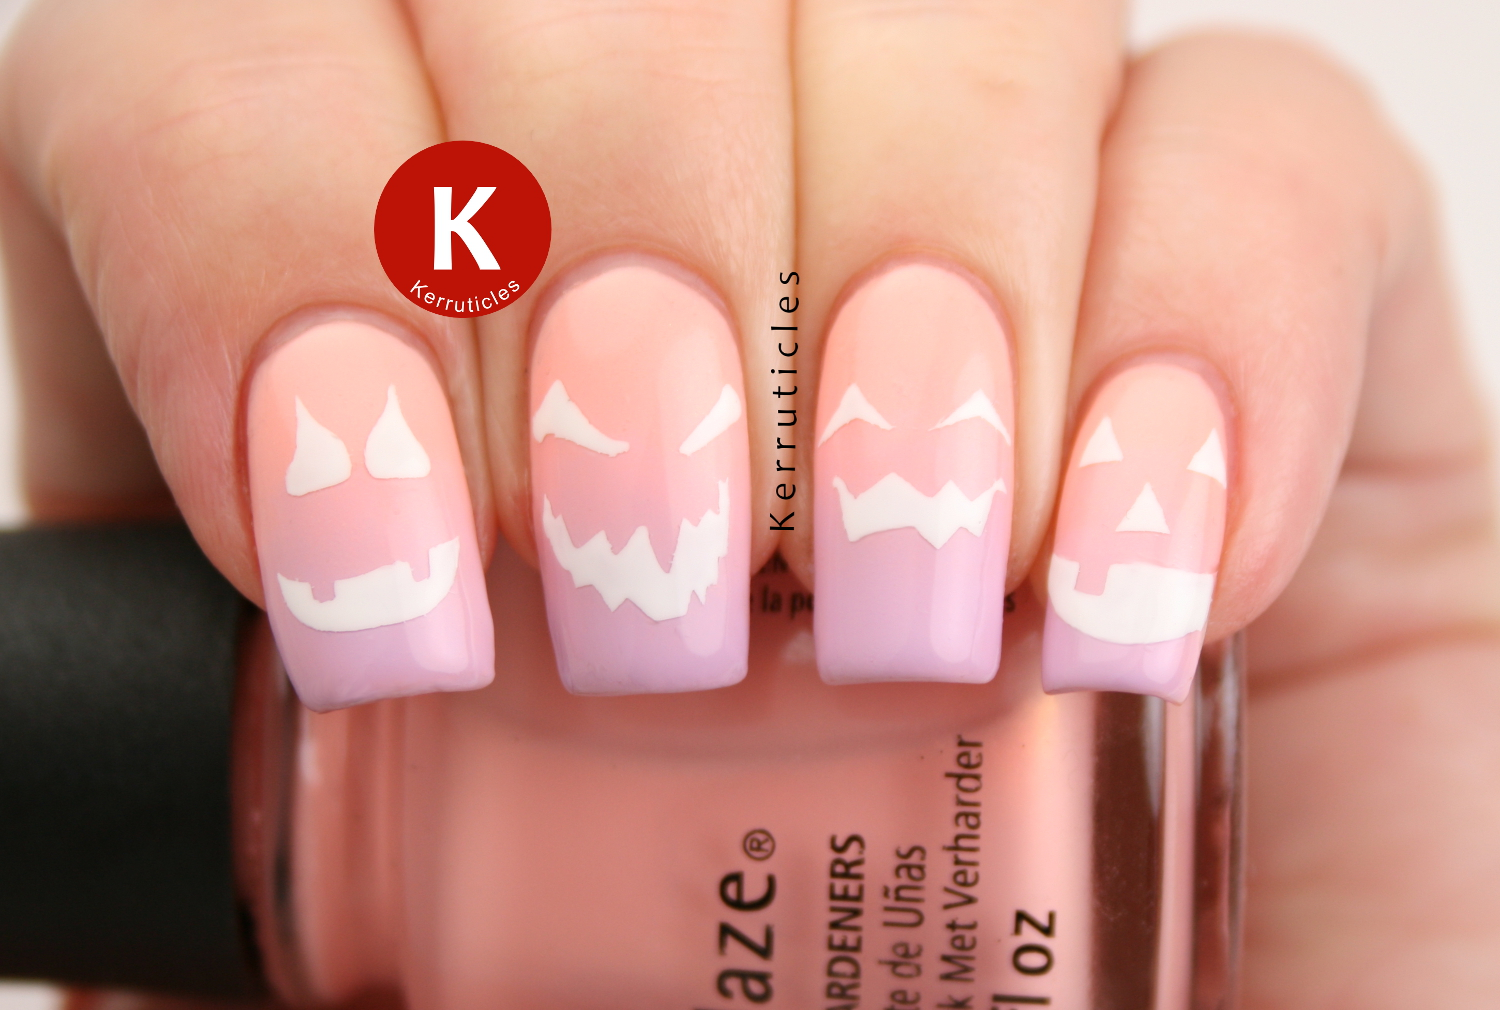 26 great nail art ideas archives kerruticles pastel halloween pumpkin faces for halloween in the wrong colours prinsesfo Choice Image